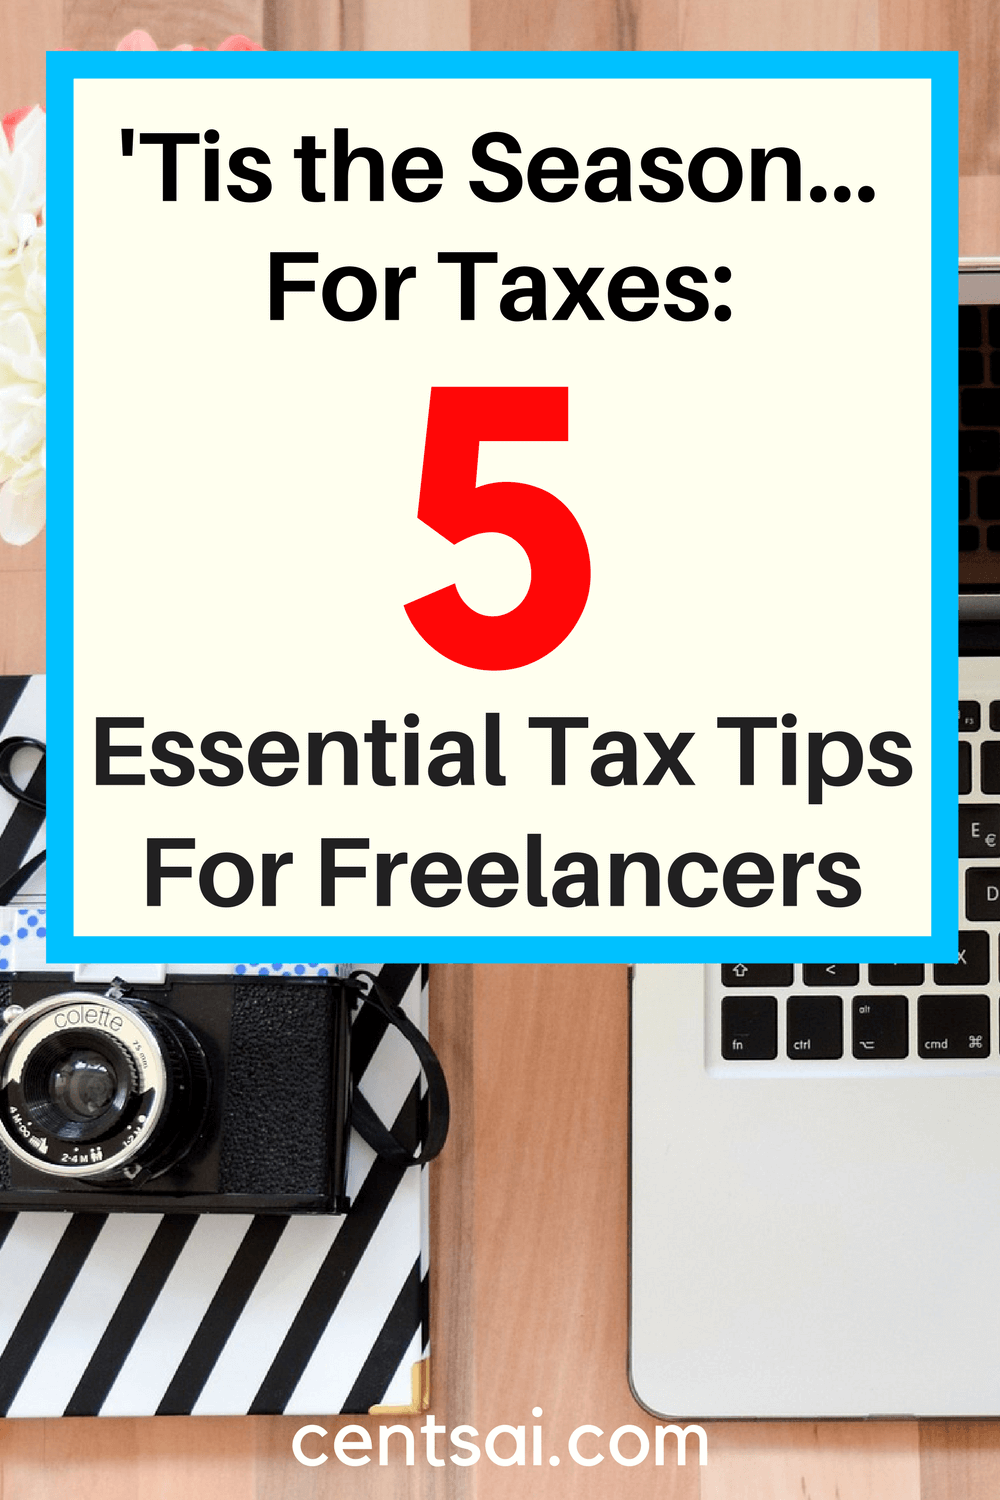 'Tis the Season... for Taxes: 5 Essential Tips for Filing Taxes as a Freelancer